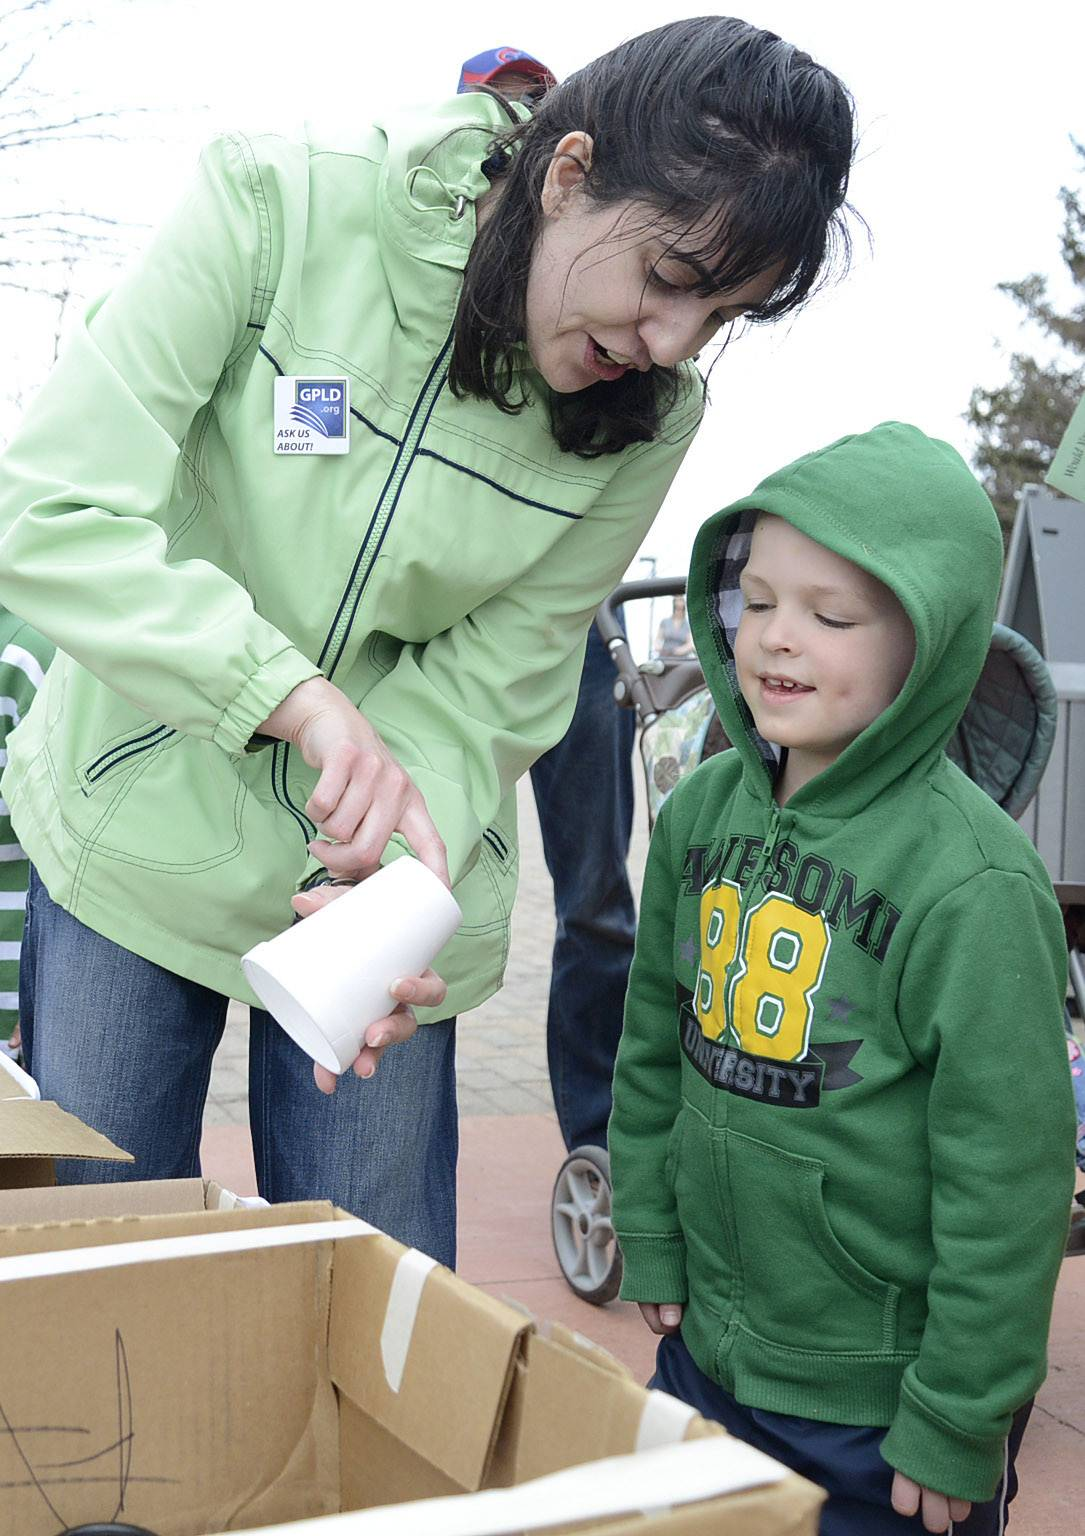 Kimberly Gotches of the Geneva Public Library shows the recycling number code on the bottom of a Styrofoam cup to Connor McInerney of Geneva Saturday at the library's Earth Day booth at Peck Farm Park in Geneva.